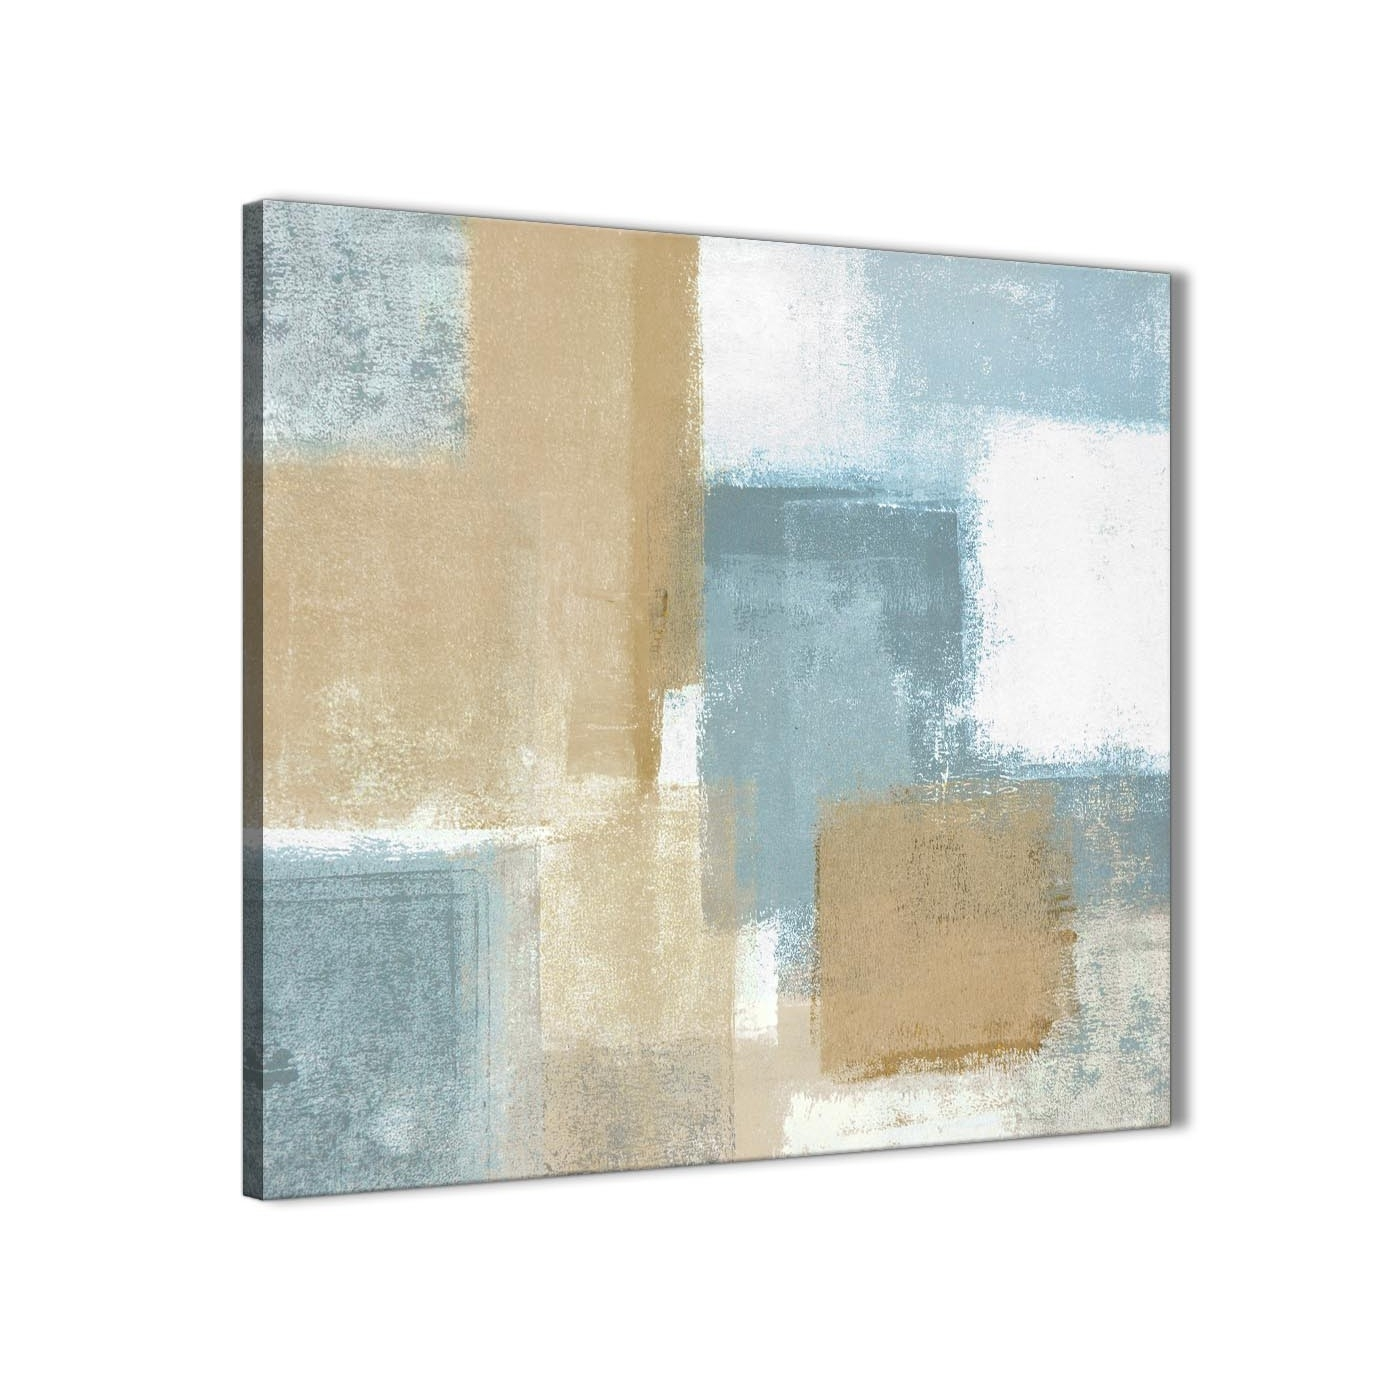 Blue Beige Brown Abstract Painting Canvas Wall Art Print – Modern For Newest Modern Abstract Painting Wall Art (View 5 of 20)